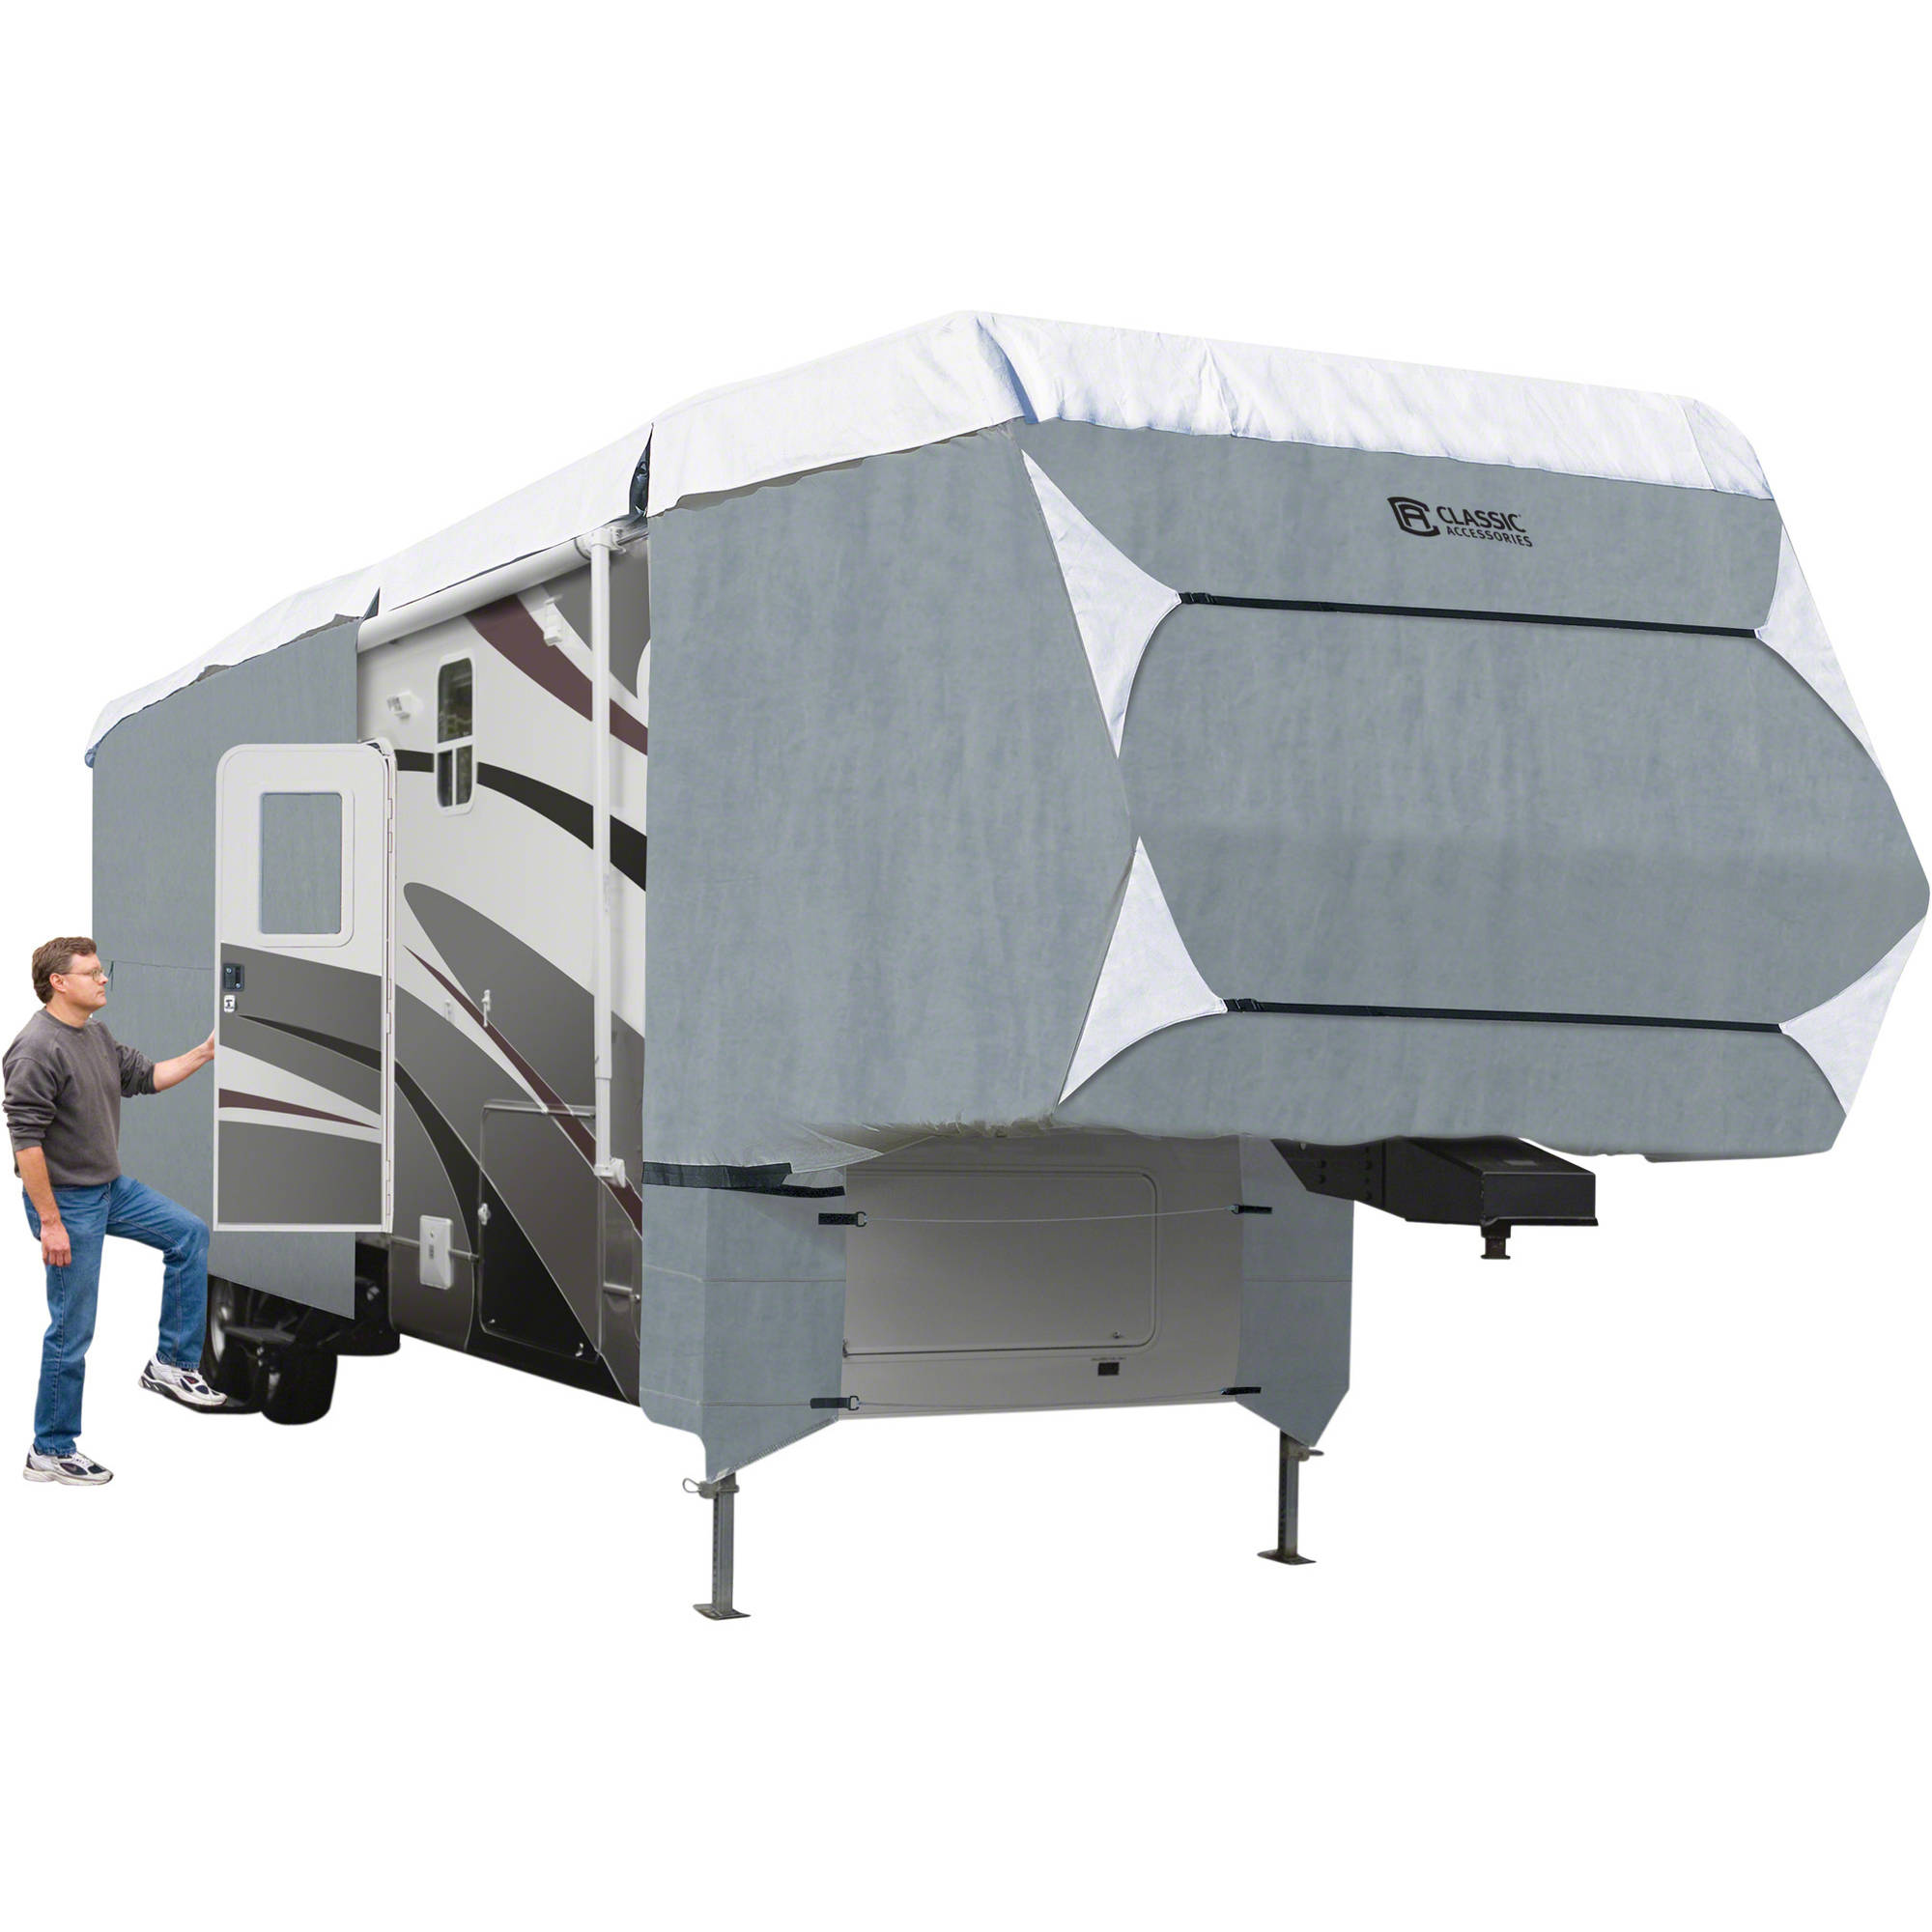 Classic Accessories PolyPro 3 Deluxe 5th Wheel RV Storage Cover, Grey, Fits 26'-29'